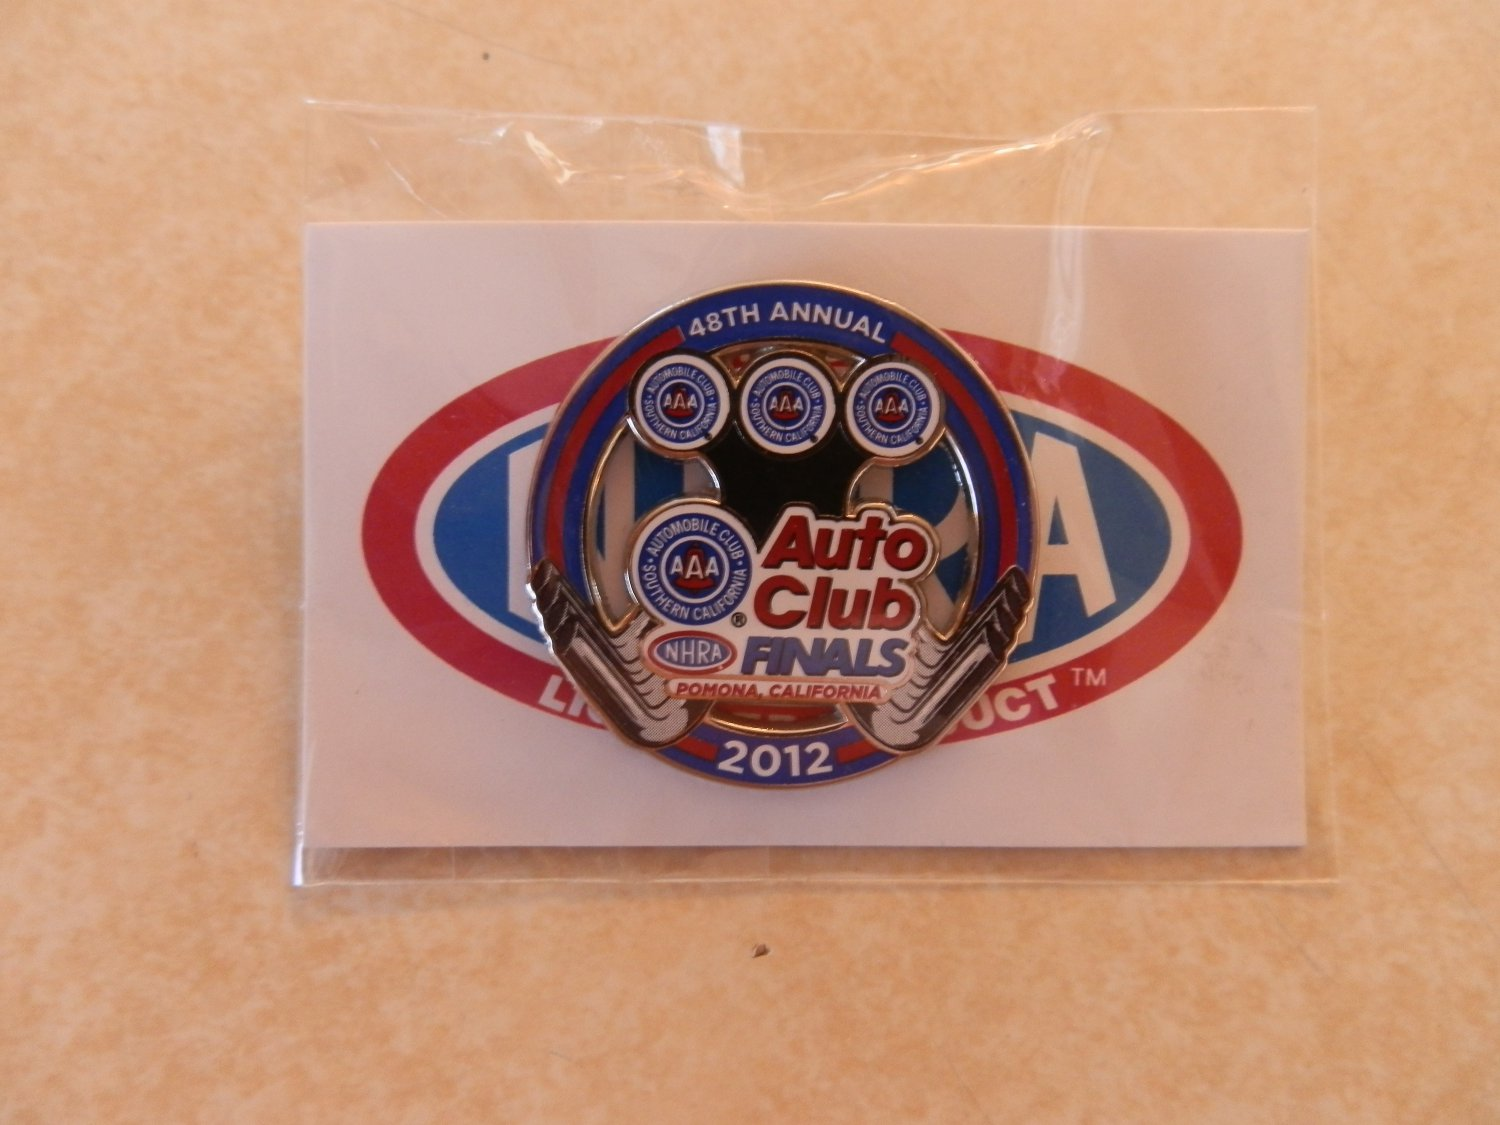 2012 NHRA Event Pin Pomona Finals